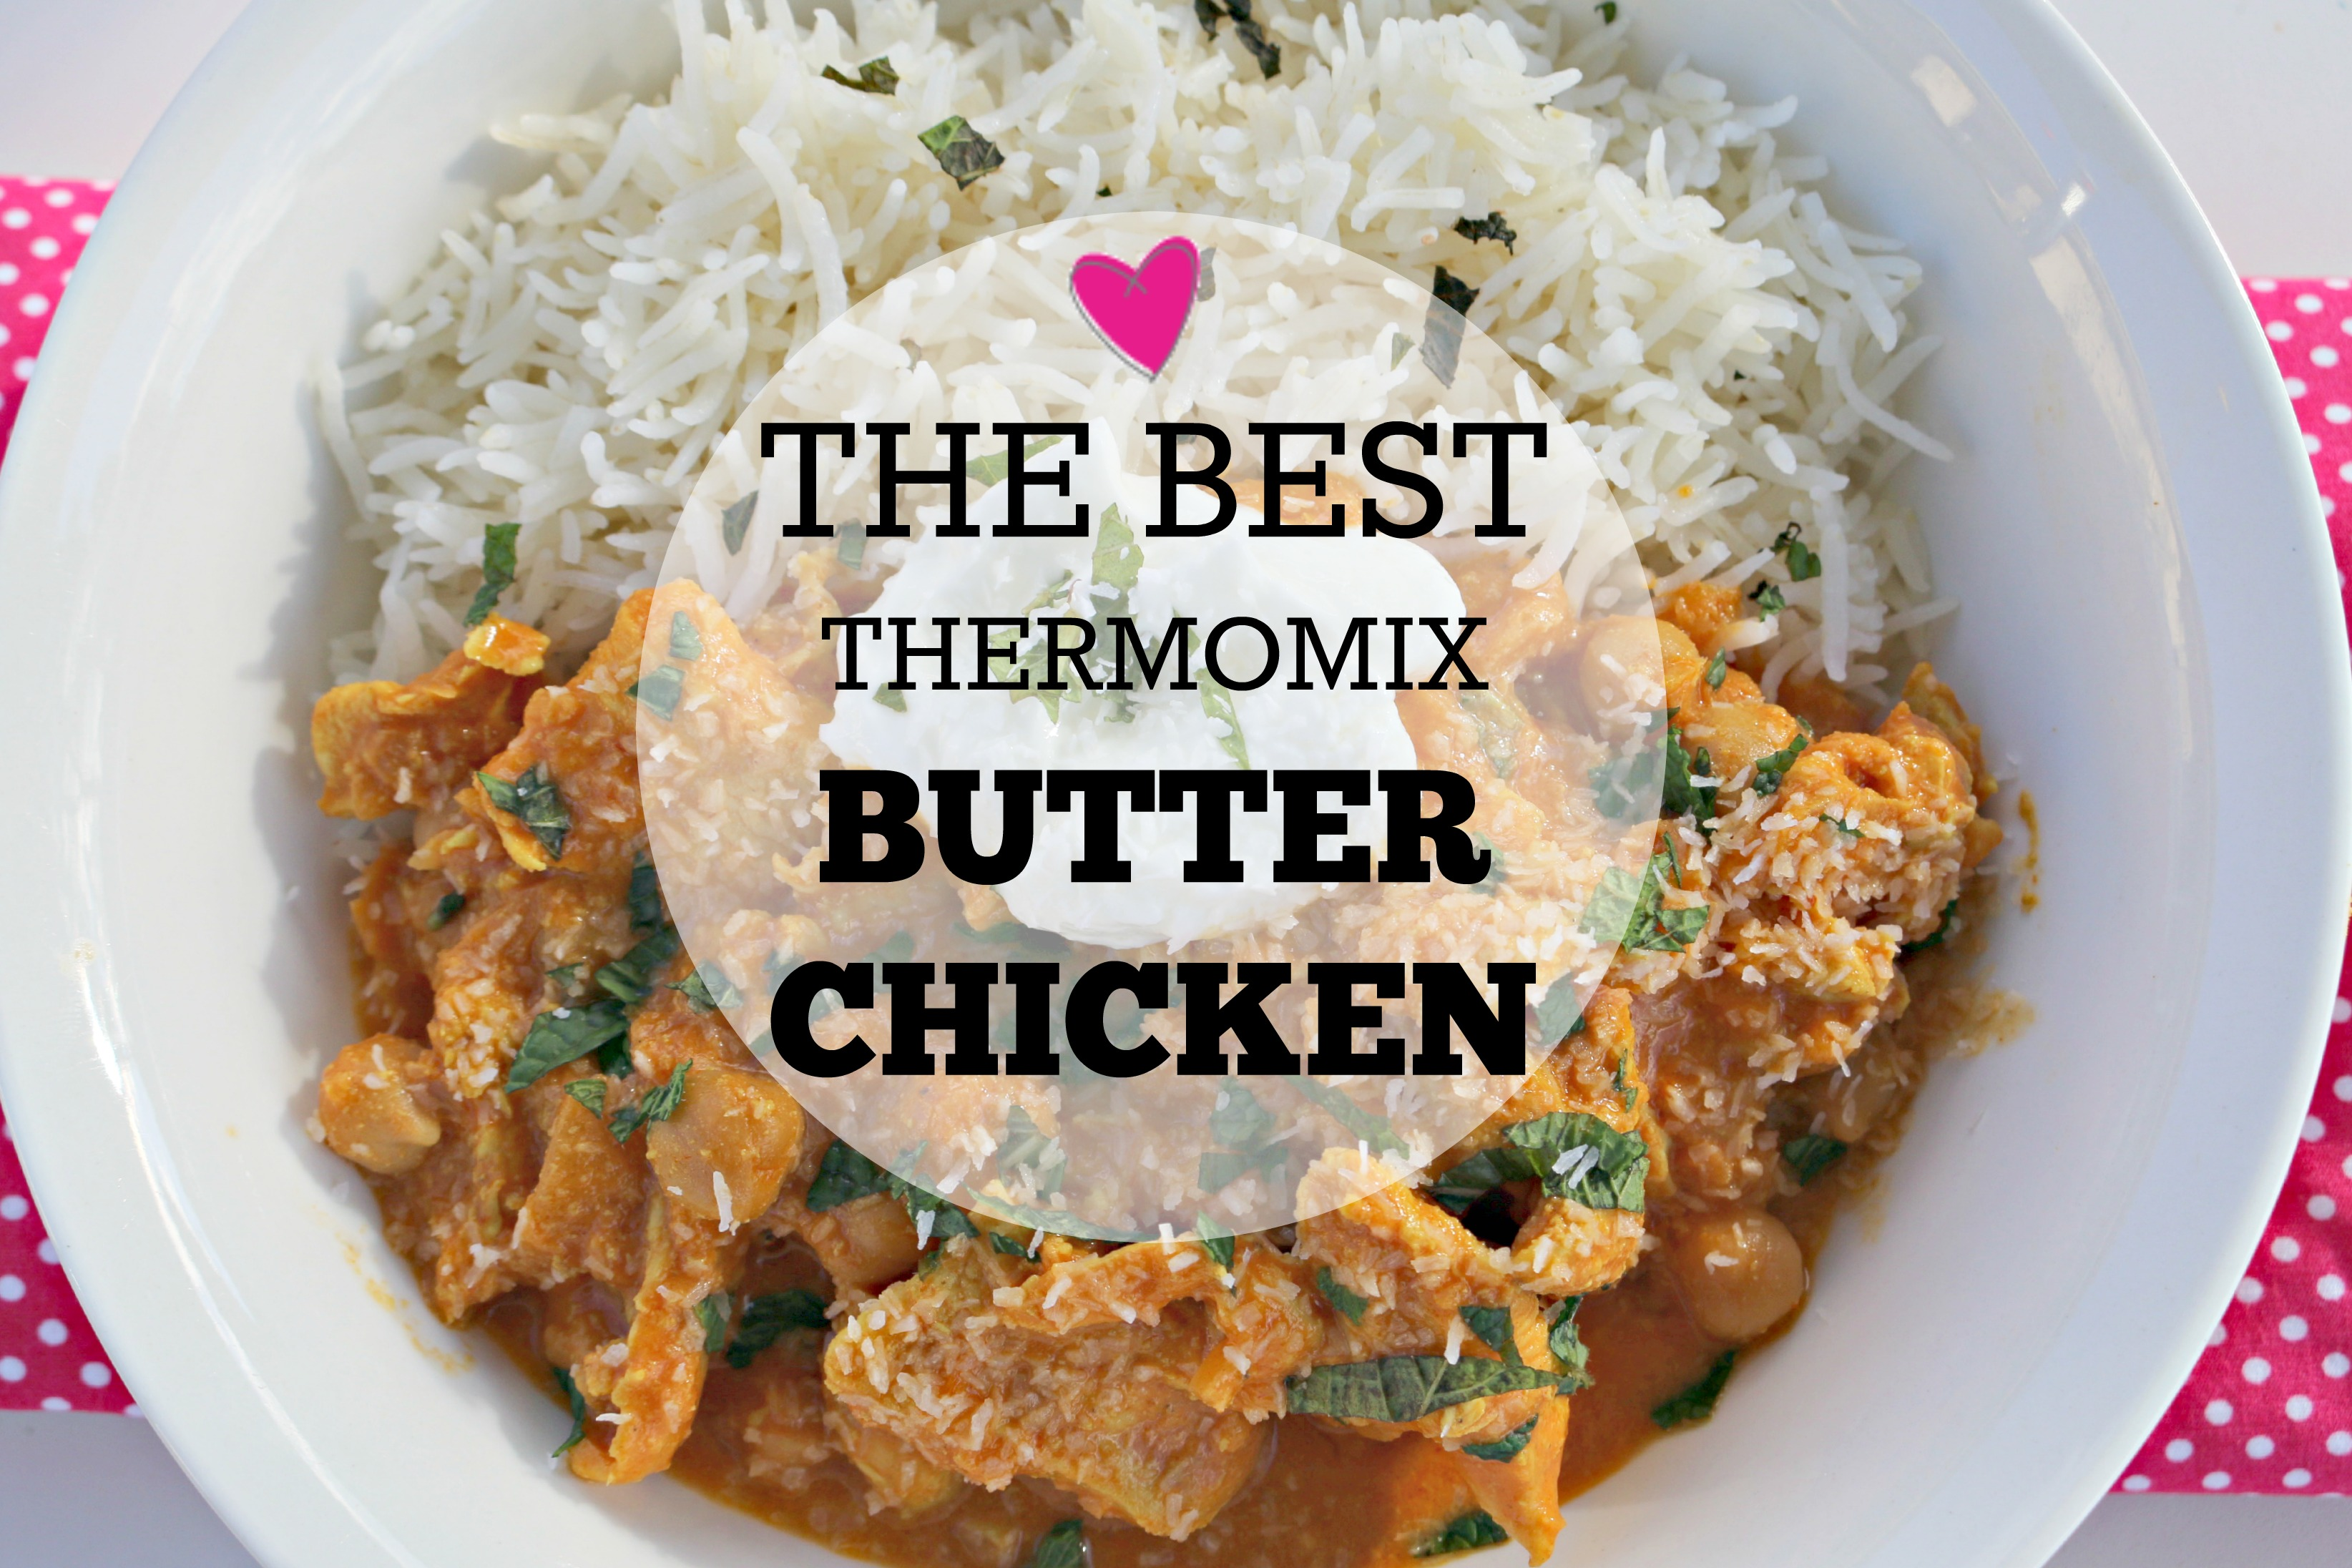 The best thermomix butter chicken forumfinder Gallery